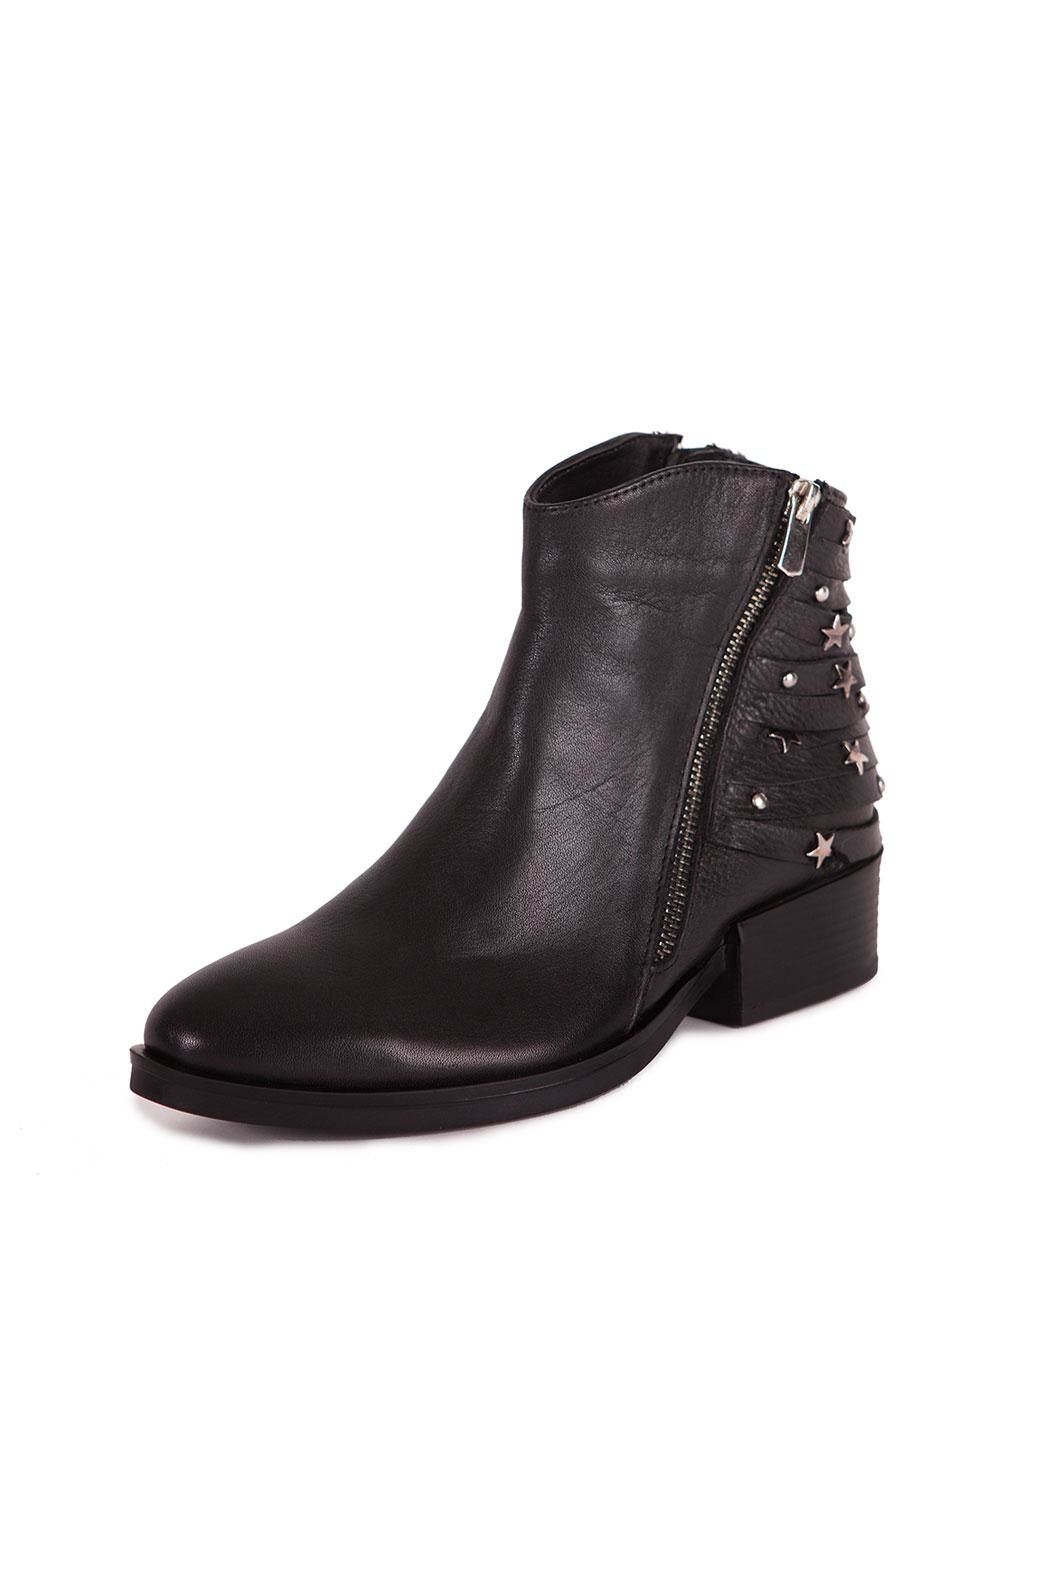 Pixy Milano Black Leather Booties - Main Image